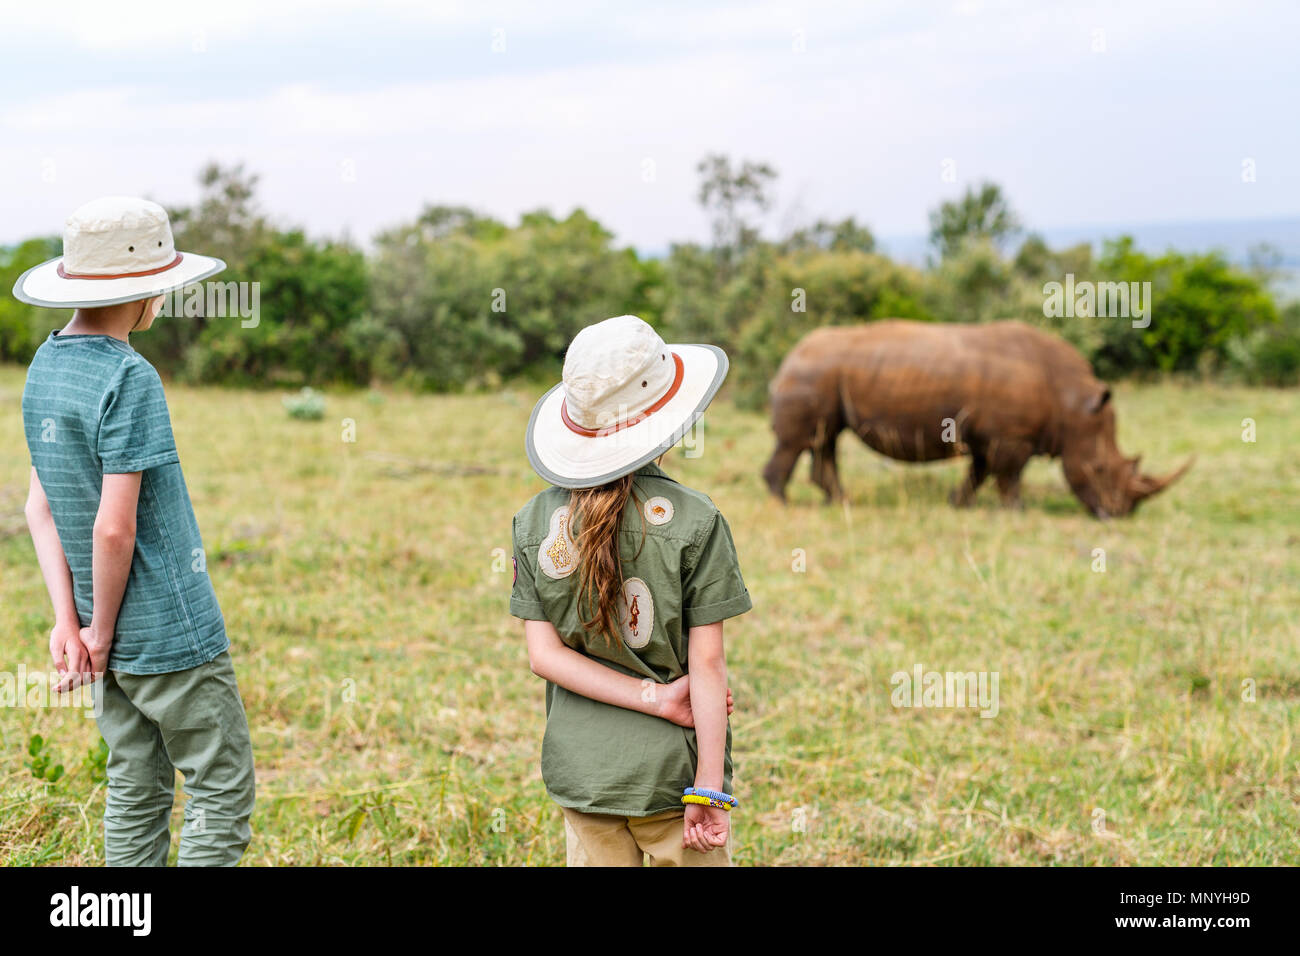 Back view of kids on safari walking close to  white rhino - Stock Image